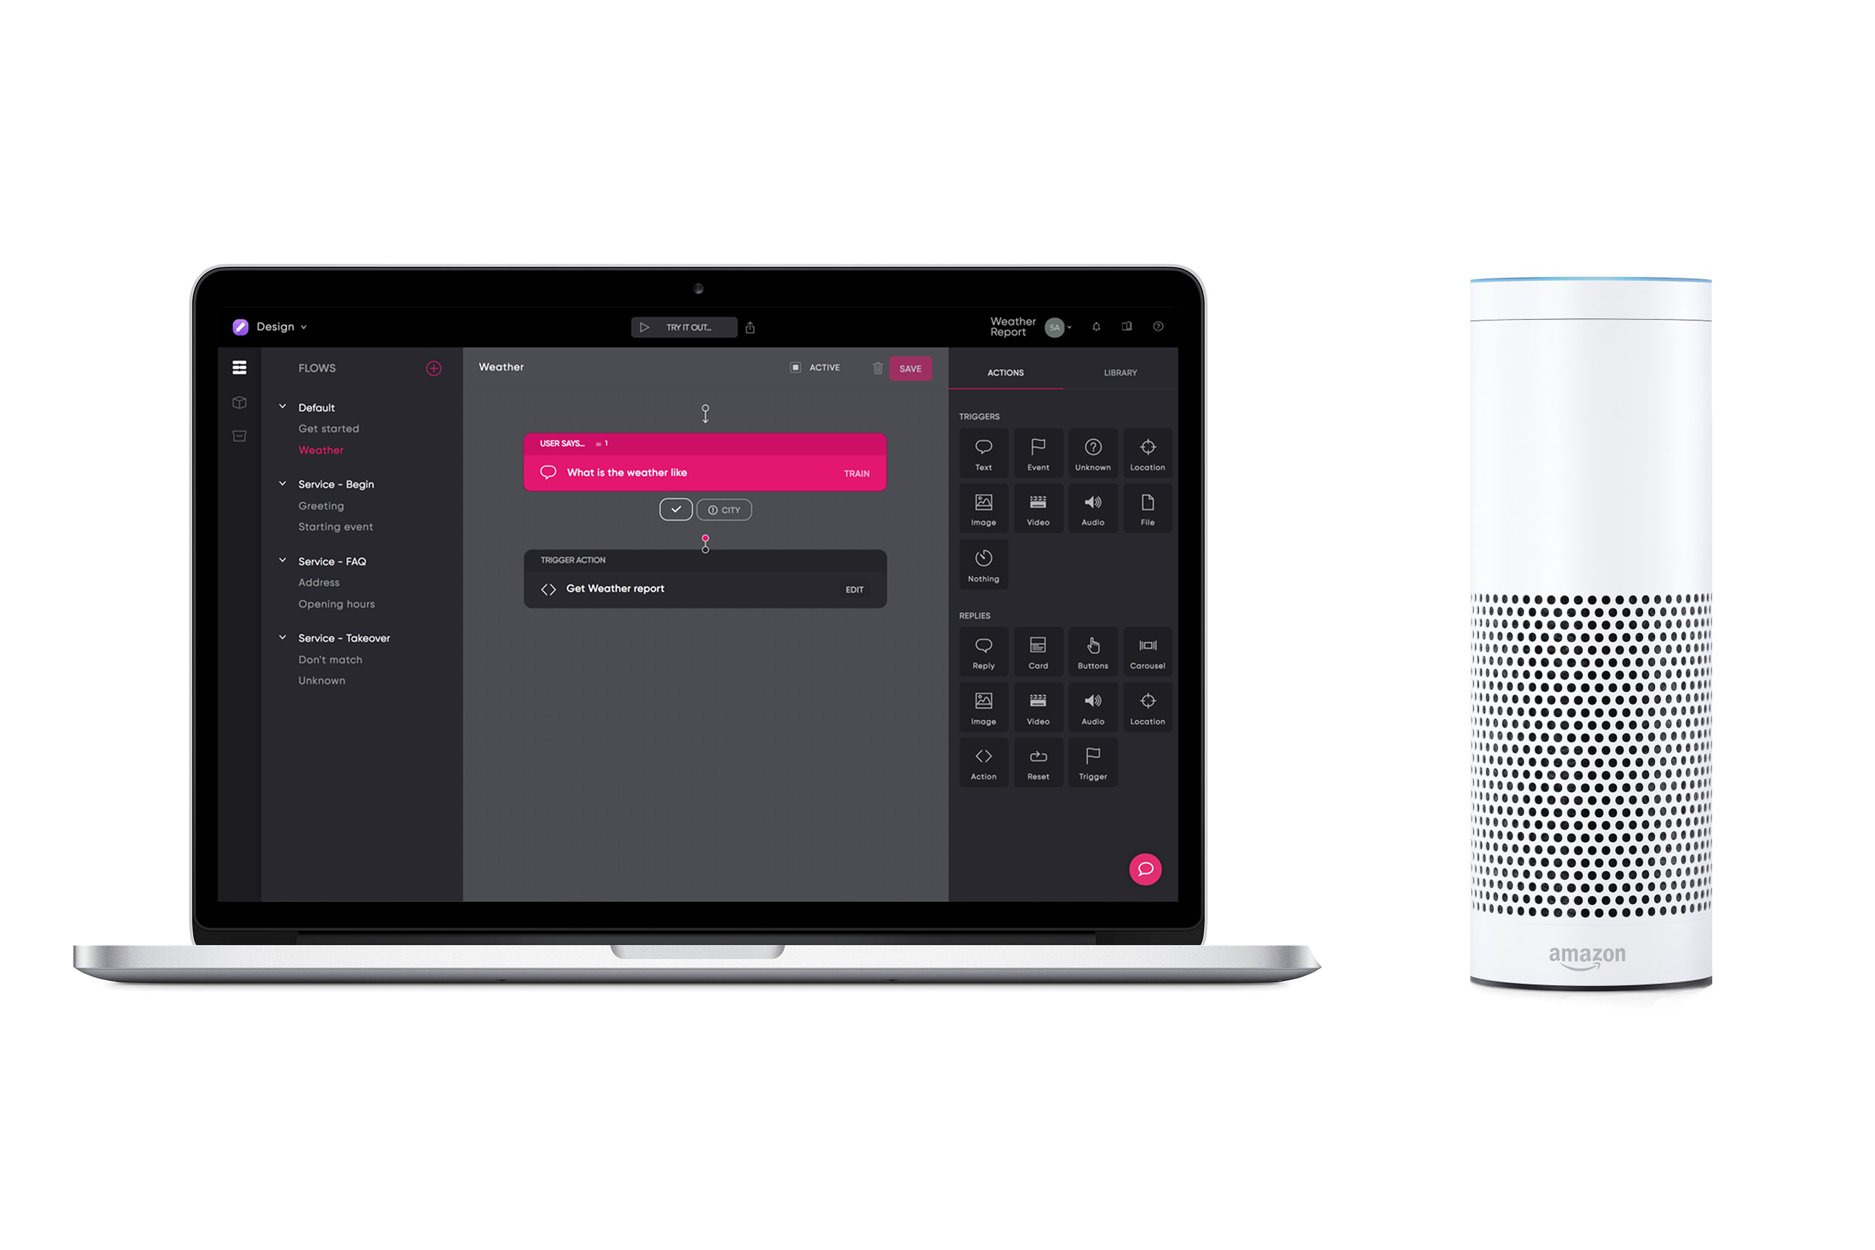 Creating an Alexa Skill with Flow ai in 5 minutes - Chatbots